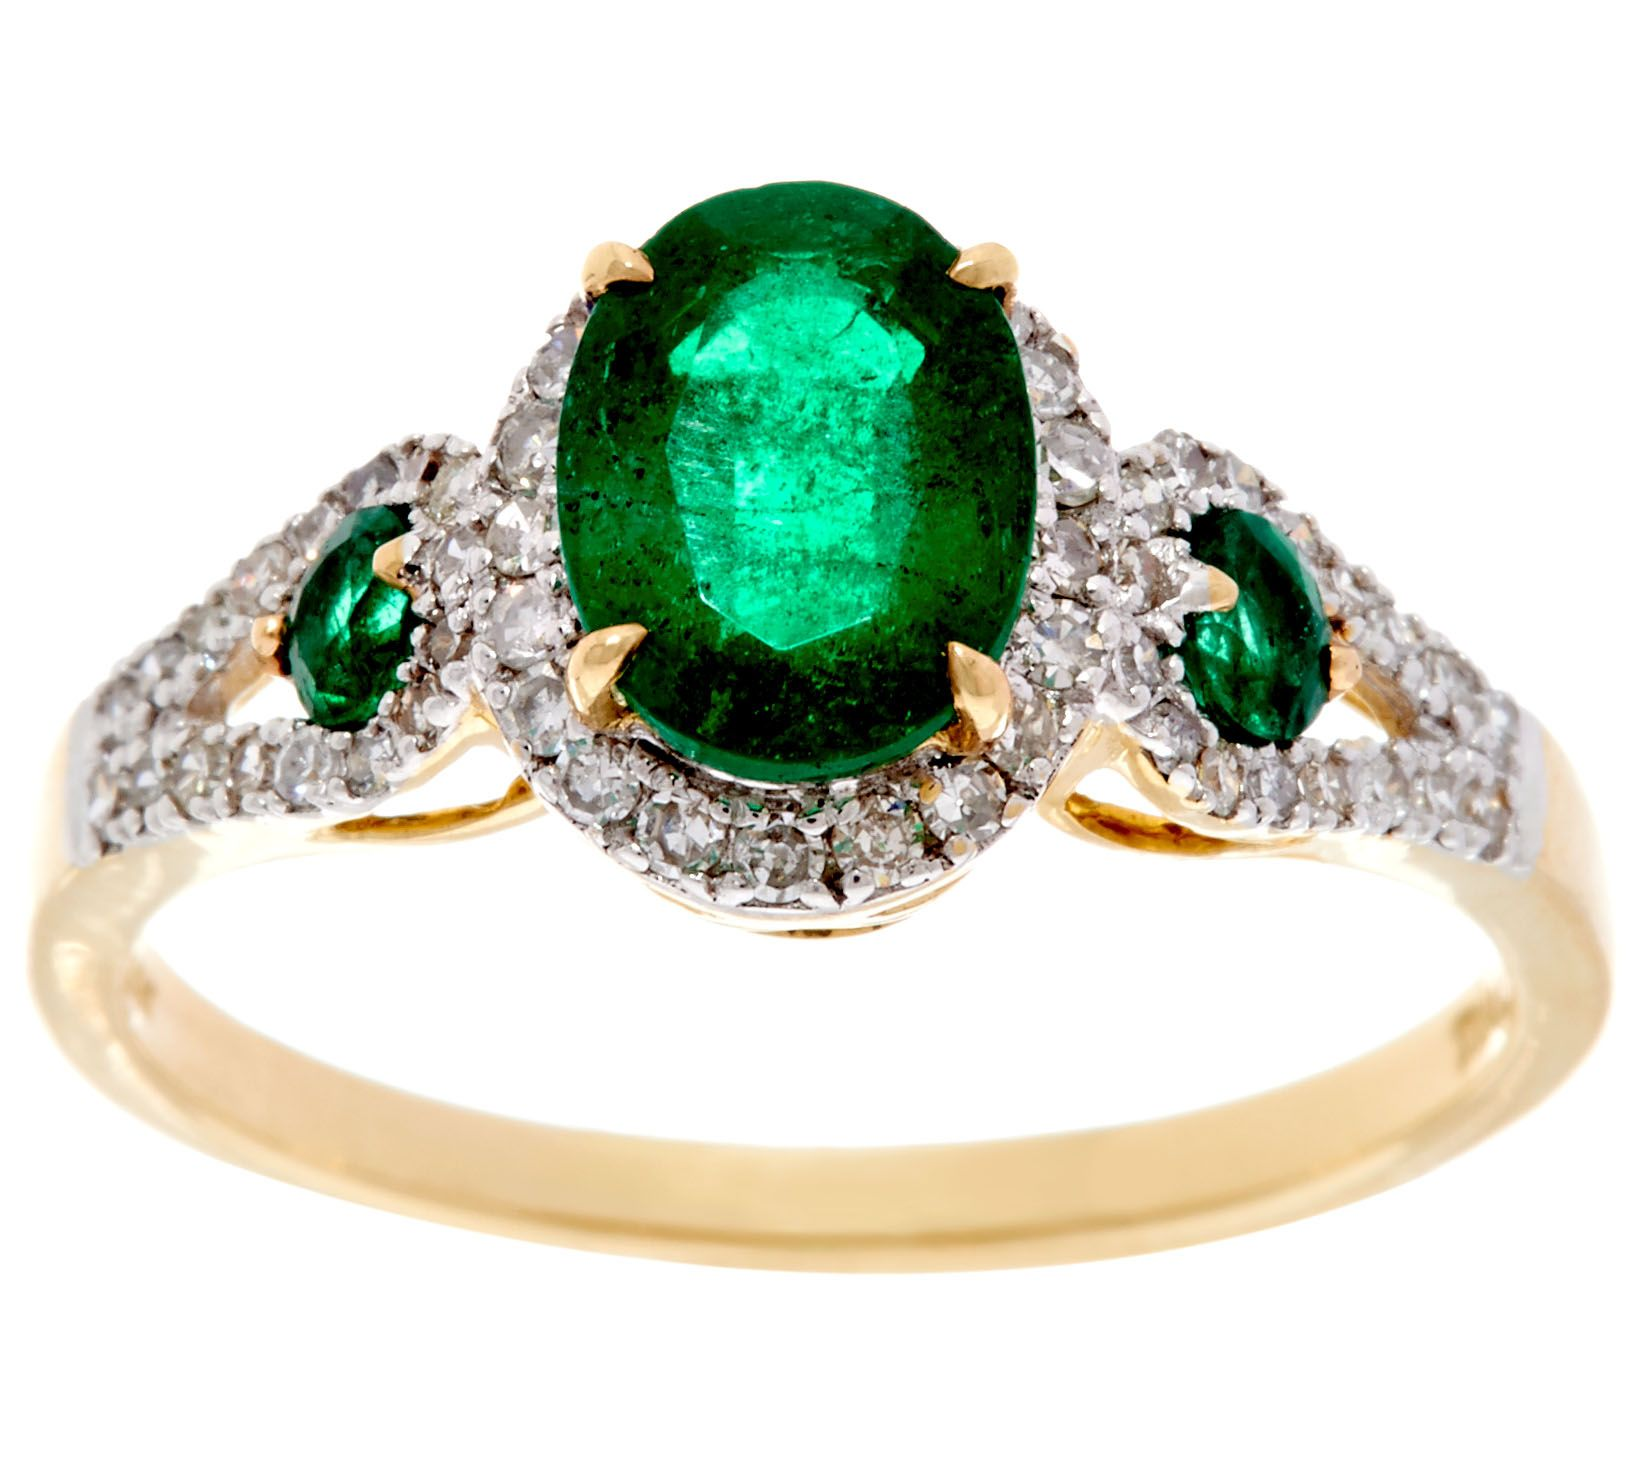 precious gemstone chinda stone and emeralds pinterest by jin gemstones gems pin emerald jewel on